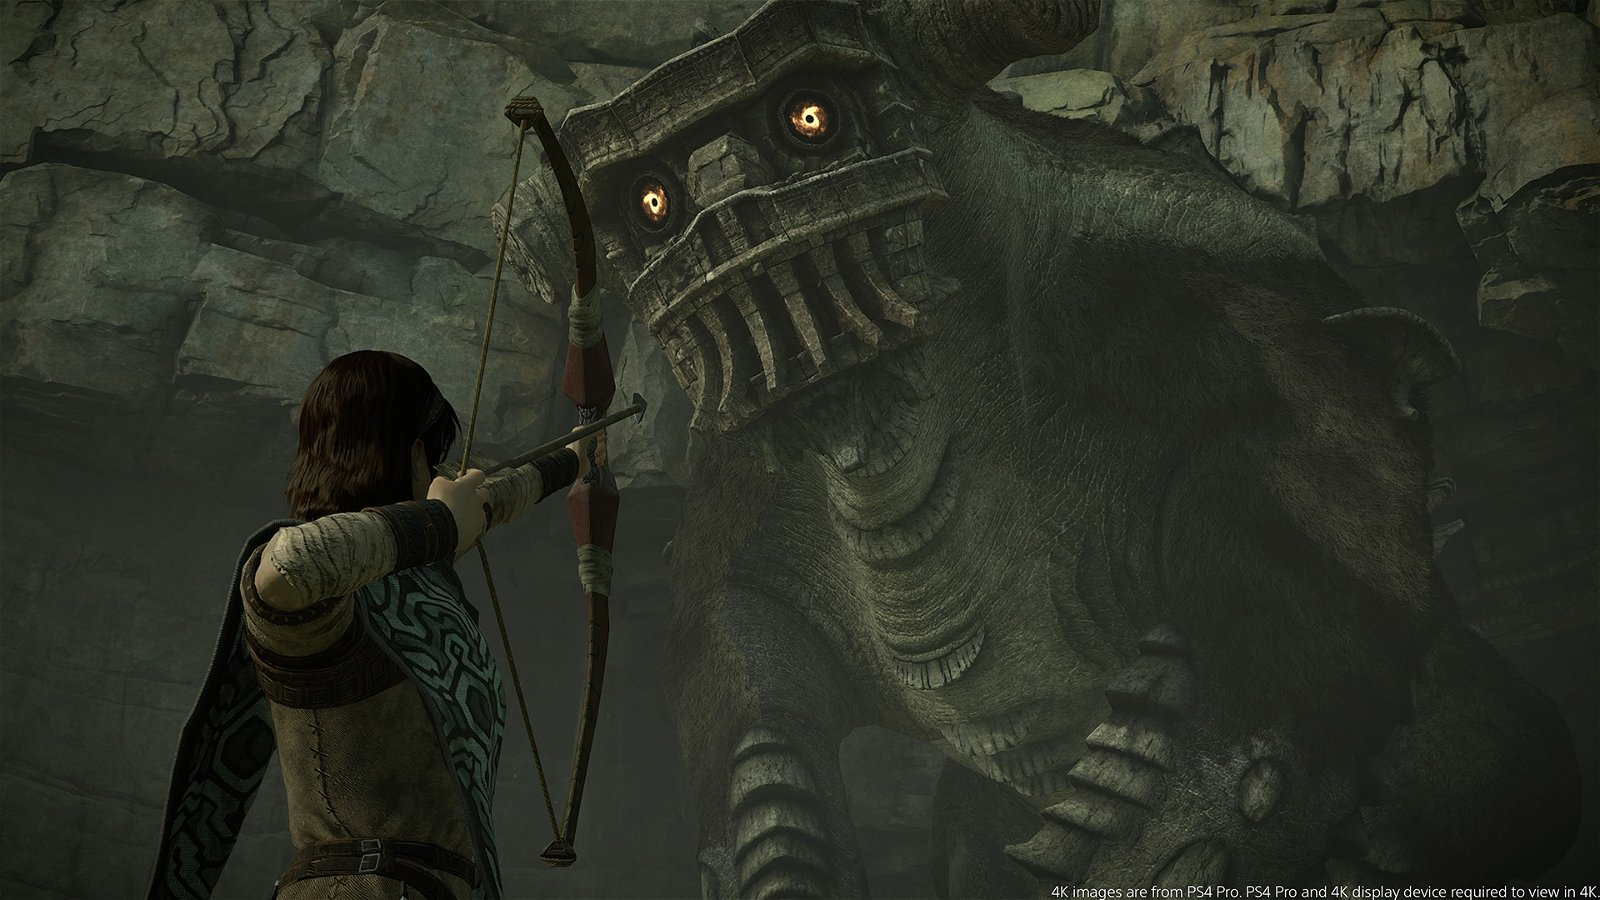 Shadow of the Colossus Remake (PlayStation 4) Review: The Eyes Have It 3